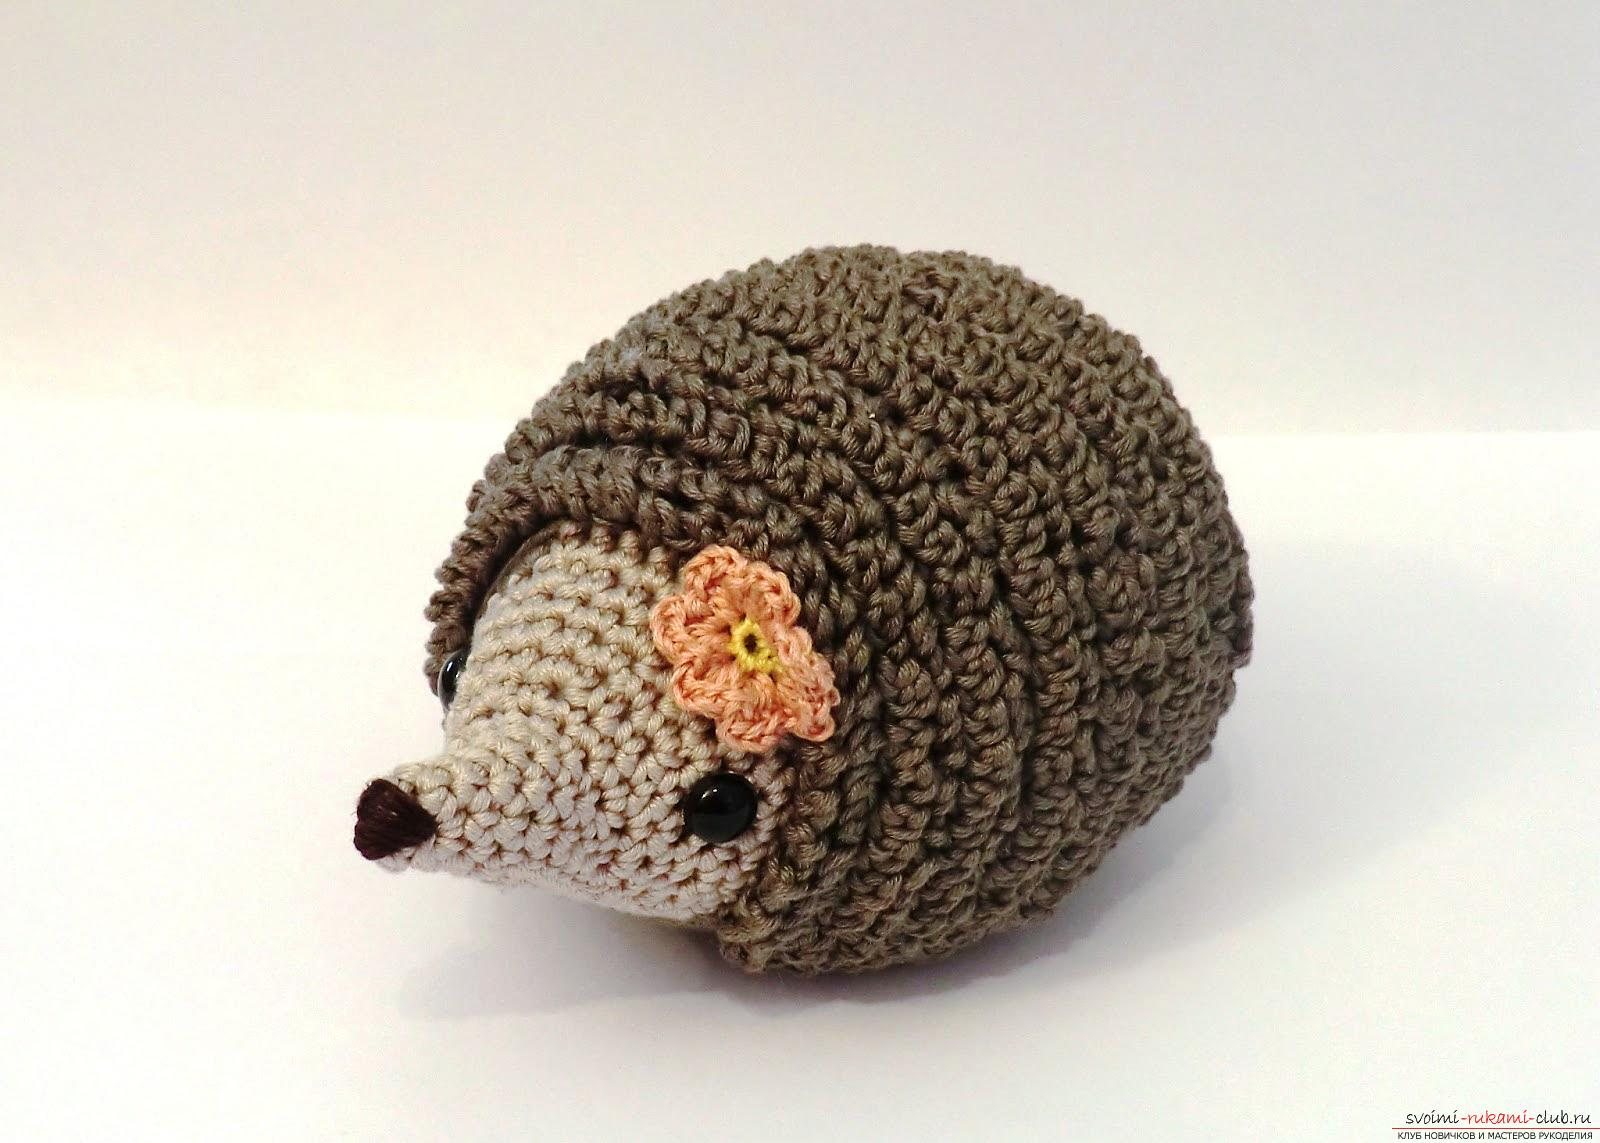 We learn to crochet the hedgehog with the hands of amigurumi with detailed instructions and photos .. Photo # 2